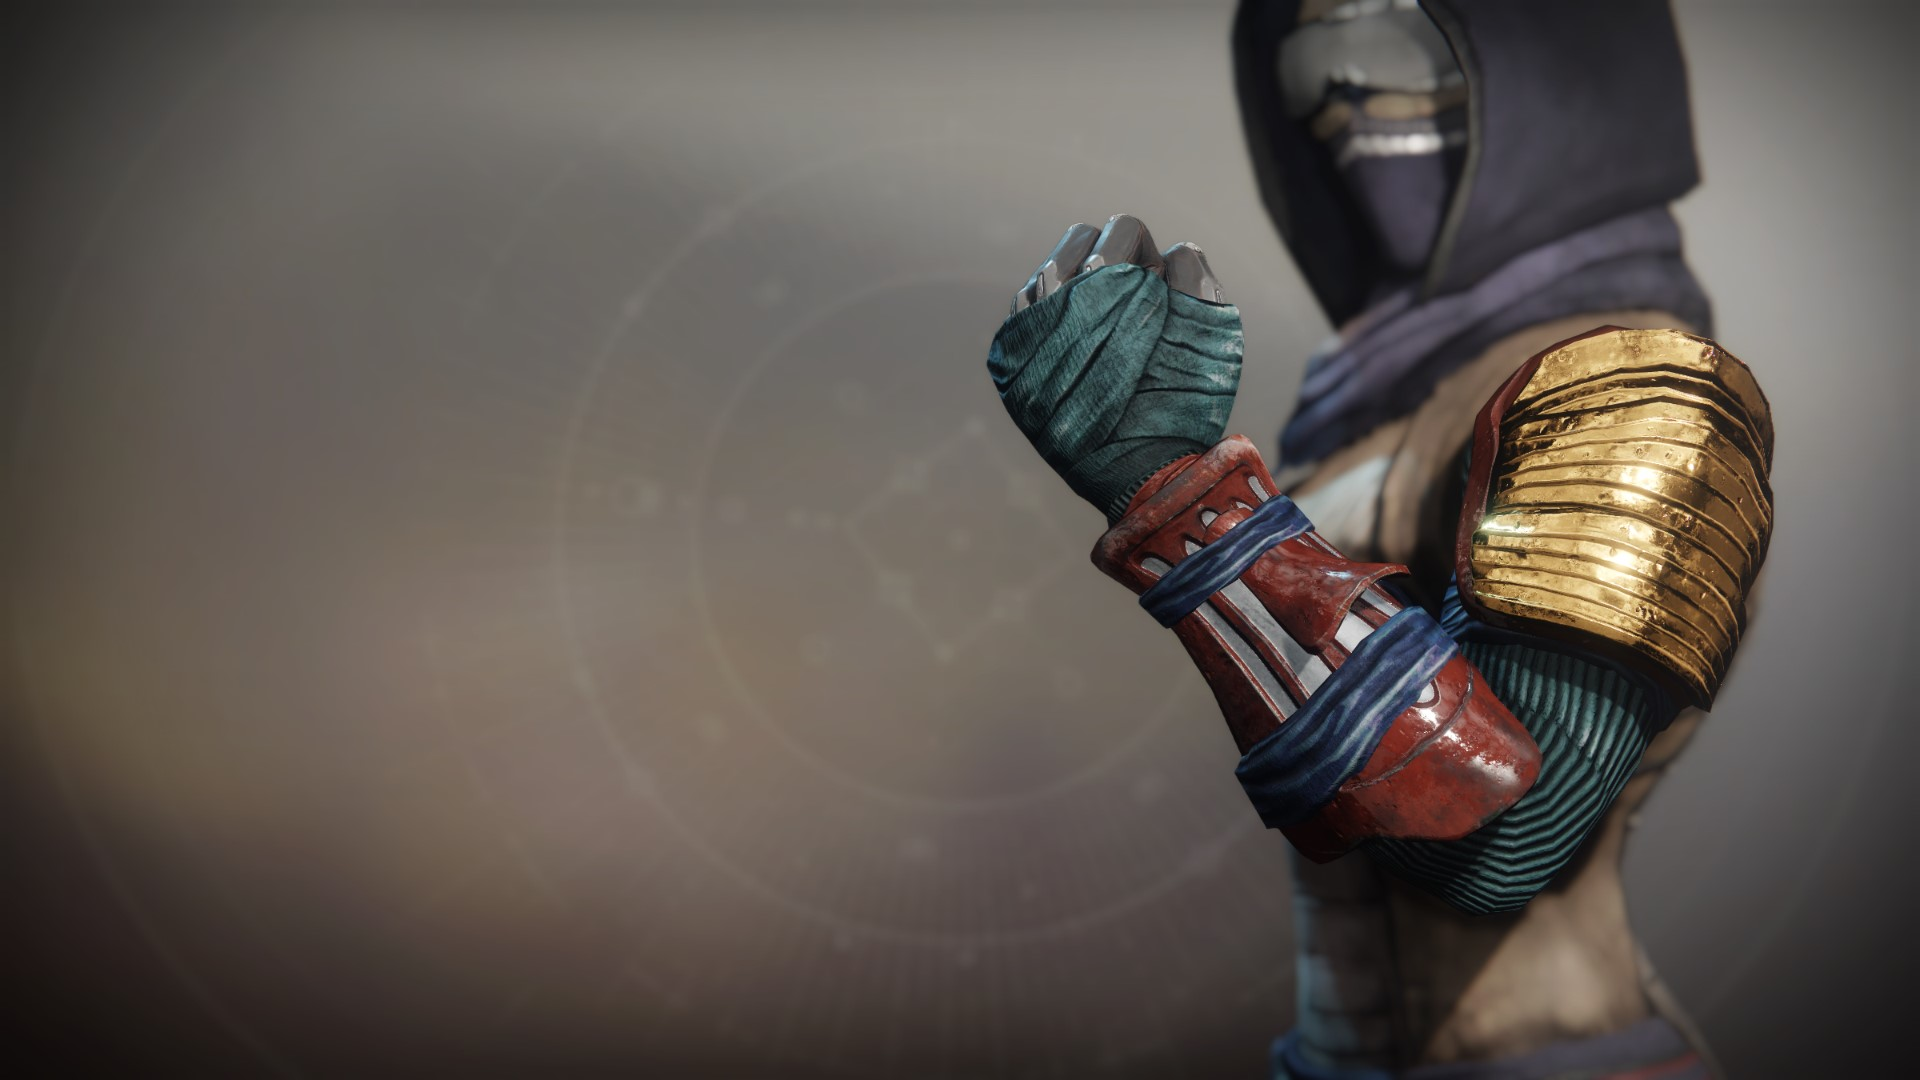 An in-game render of the Iron Remembrance Grips.